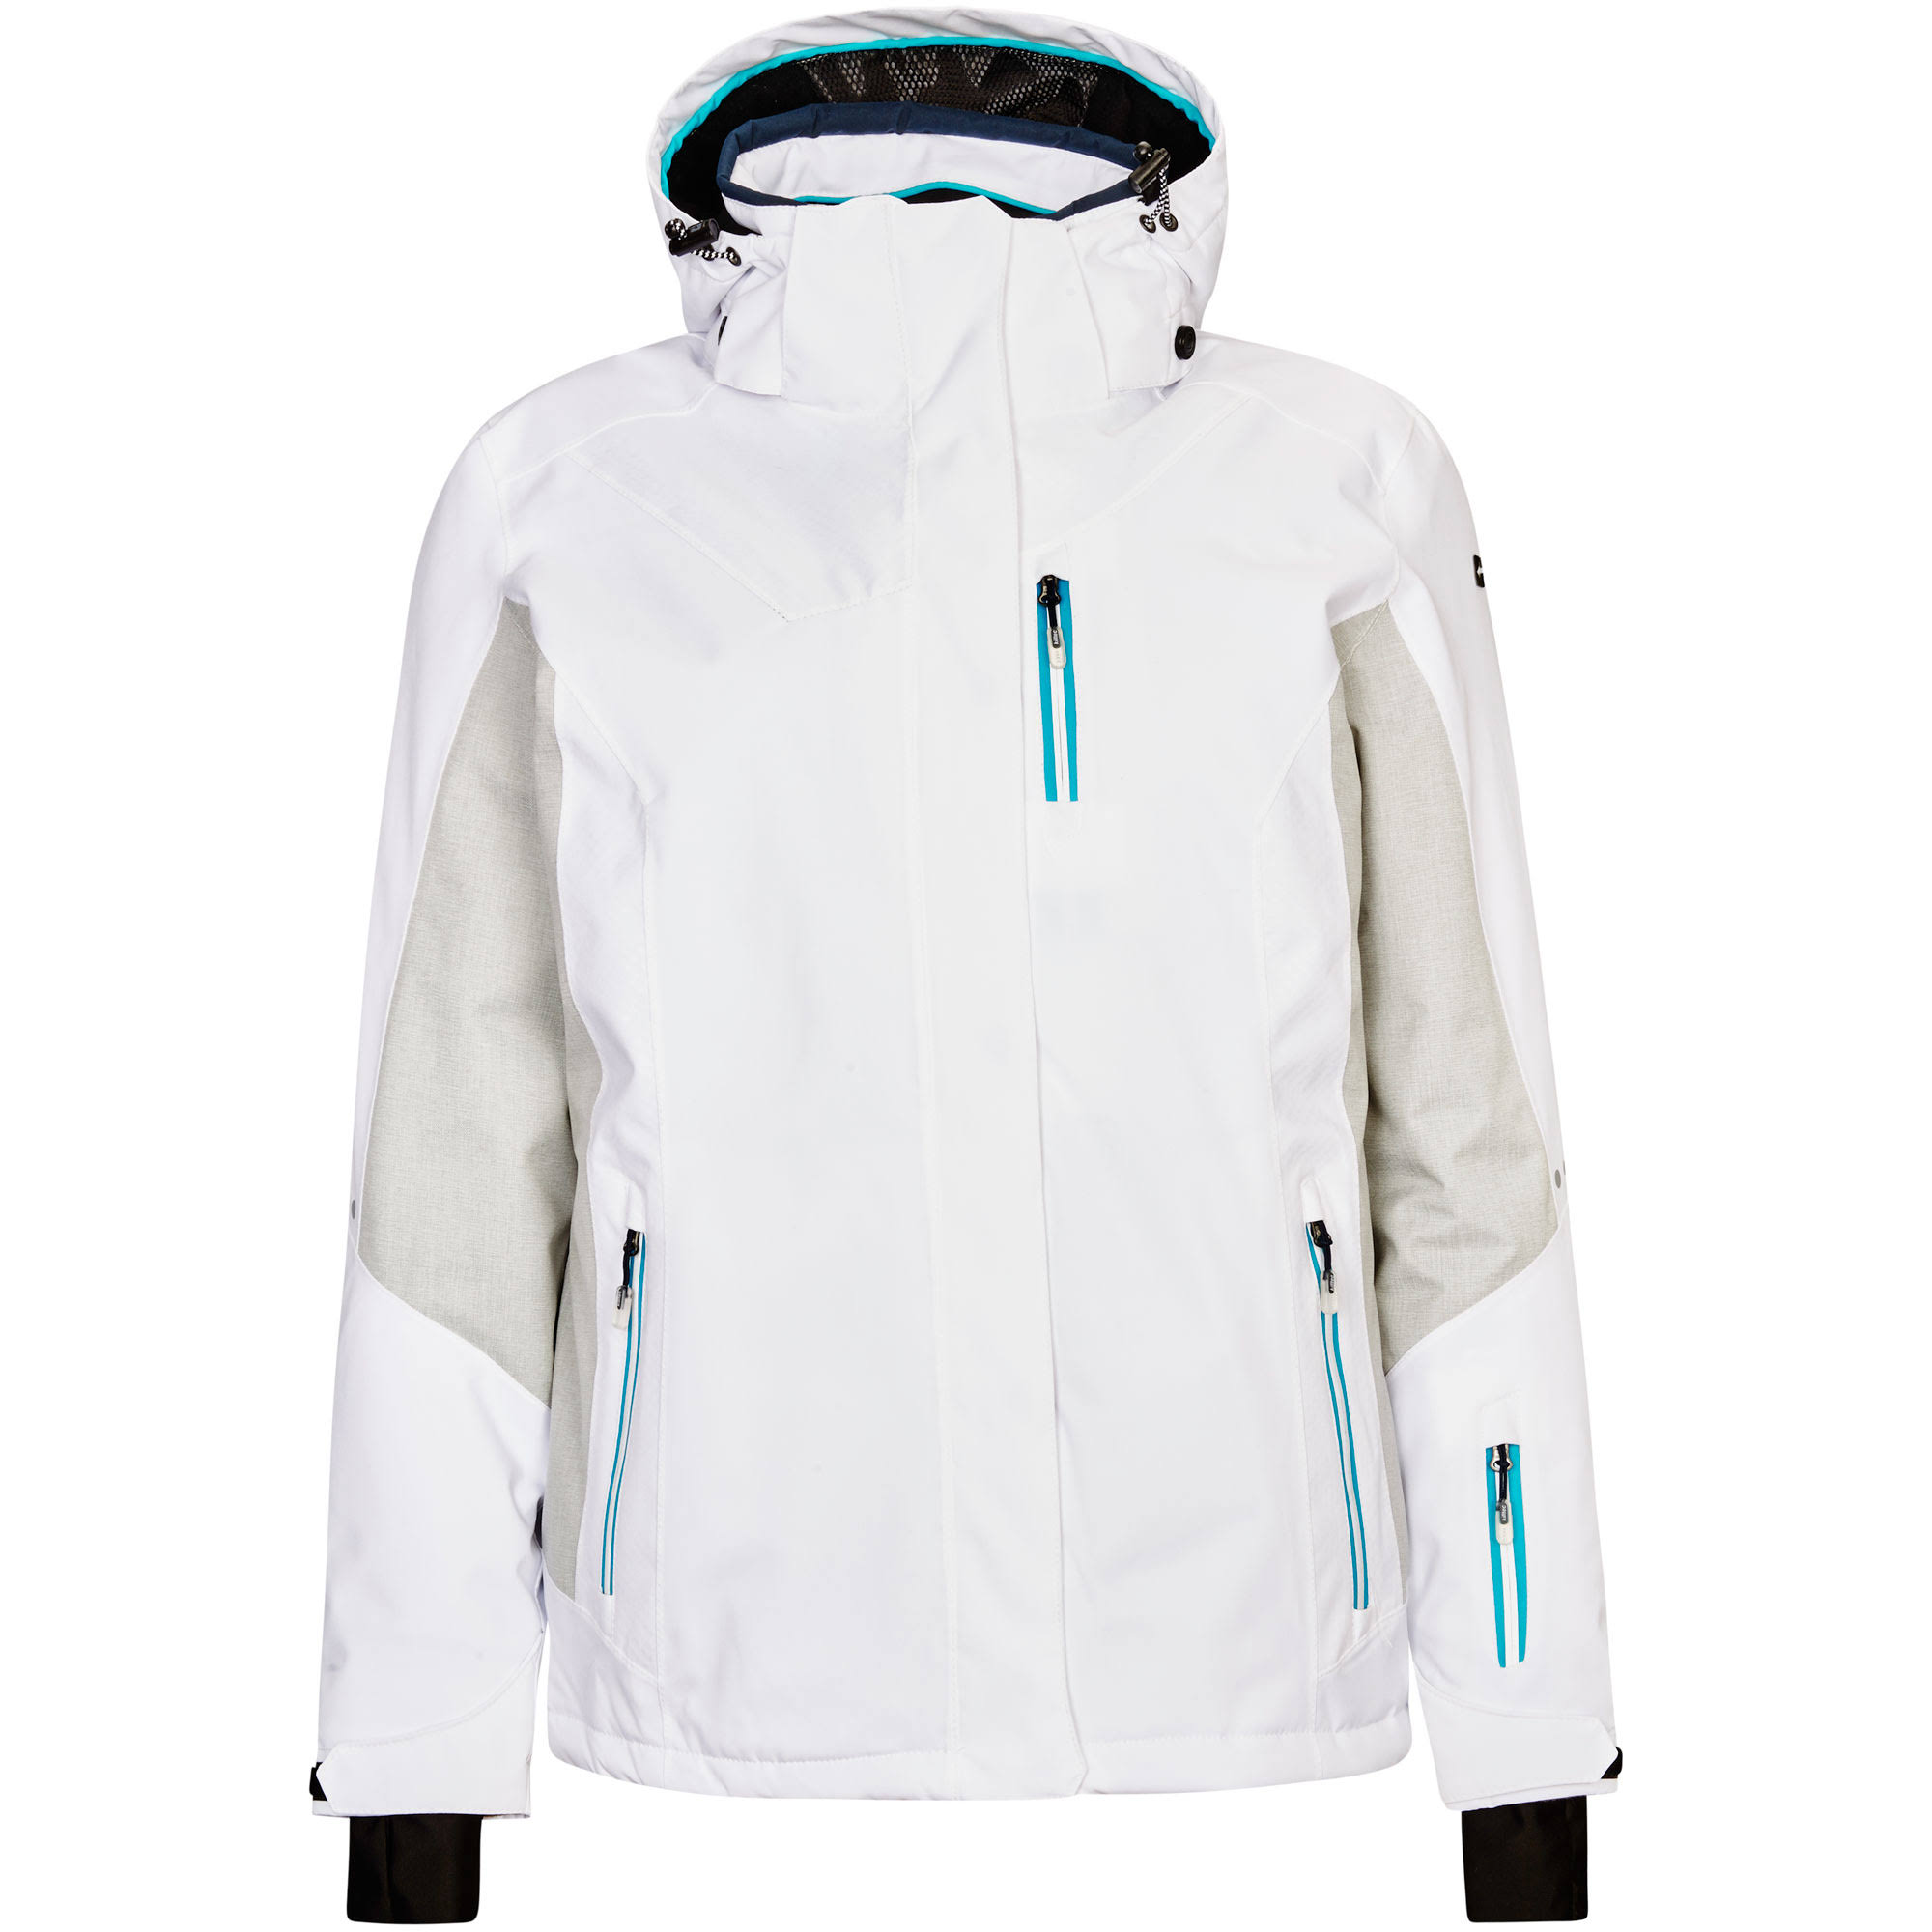 Killtec Birasa Jacket Womens - White - Size 8 - 33902